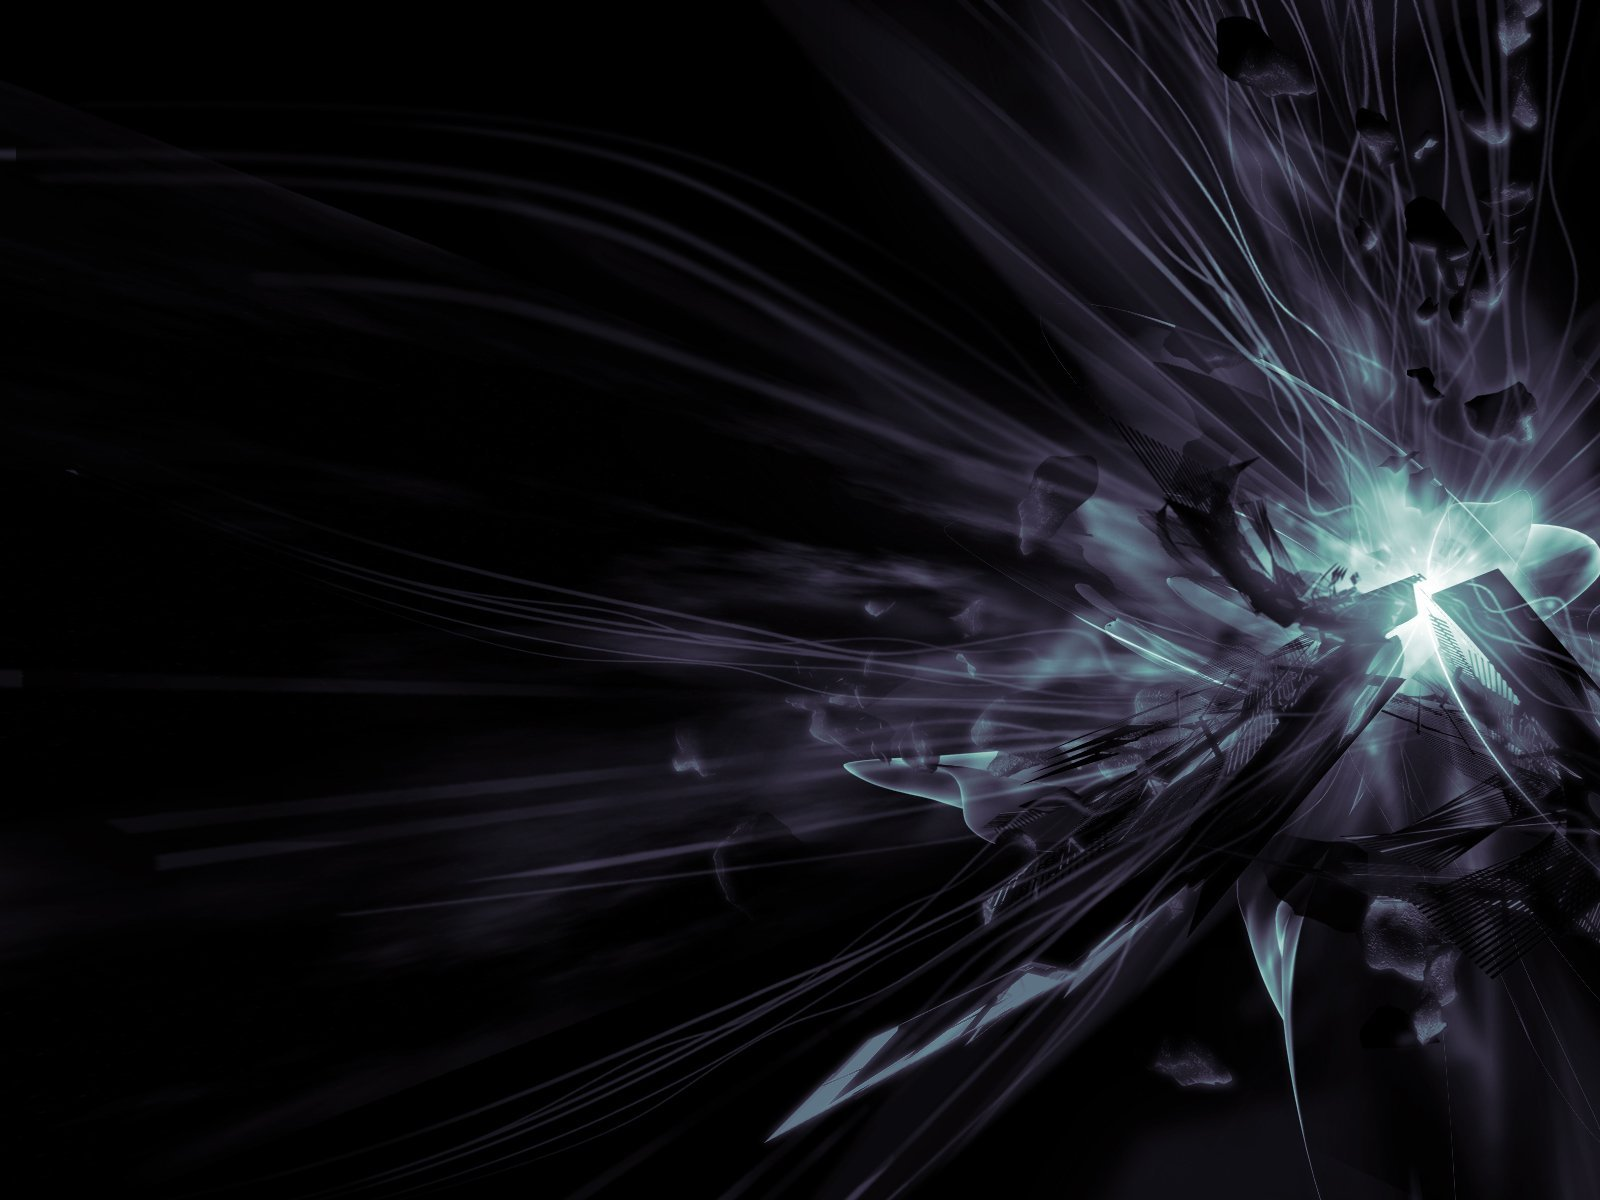 Black HD Wallpaper Backgrounds Zone Wallpaper Backgrounds 1600x1200